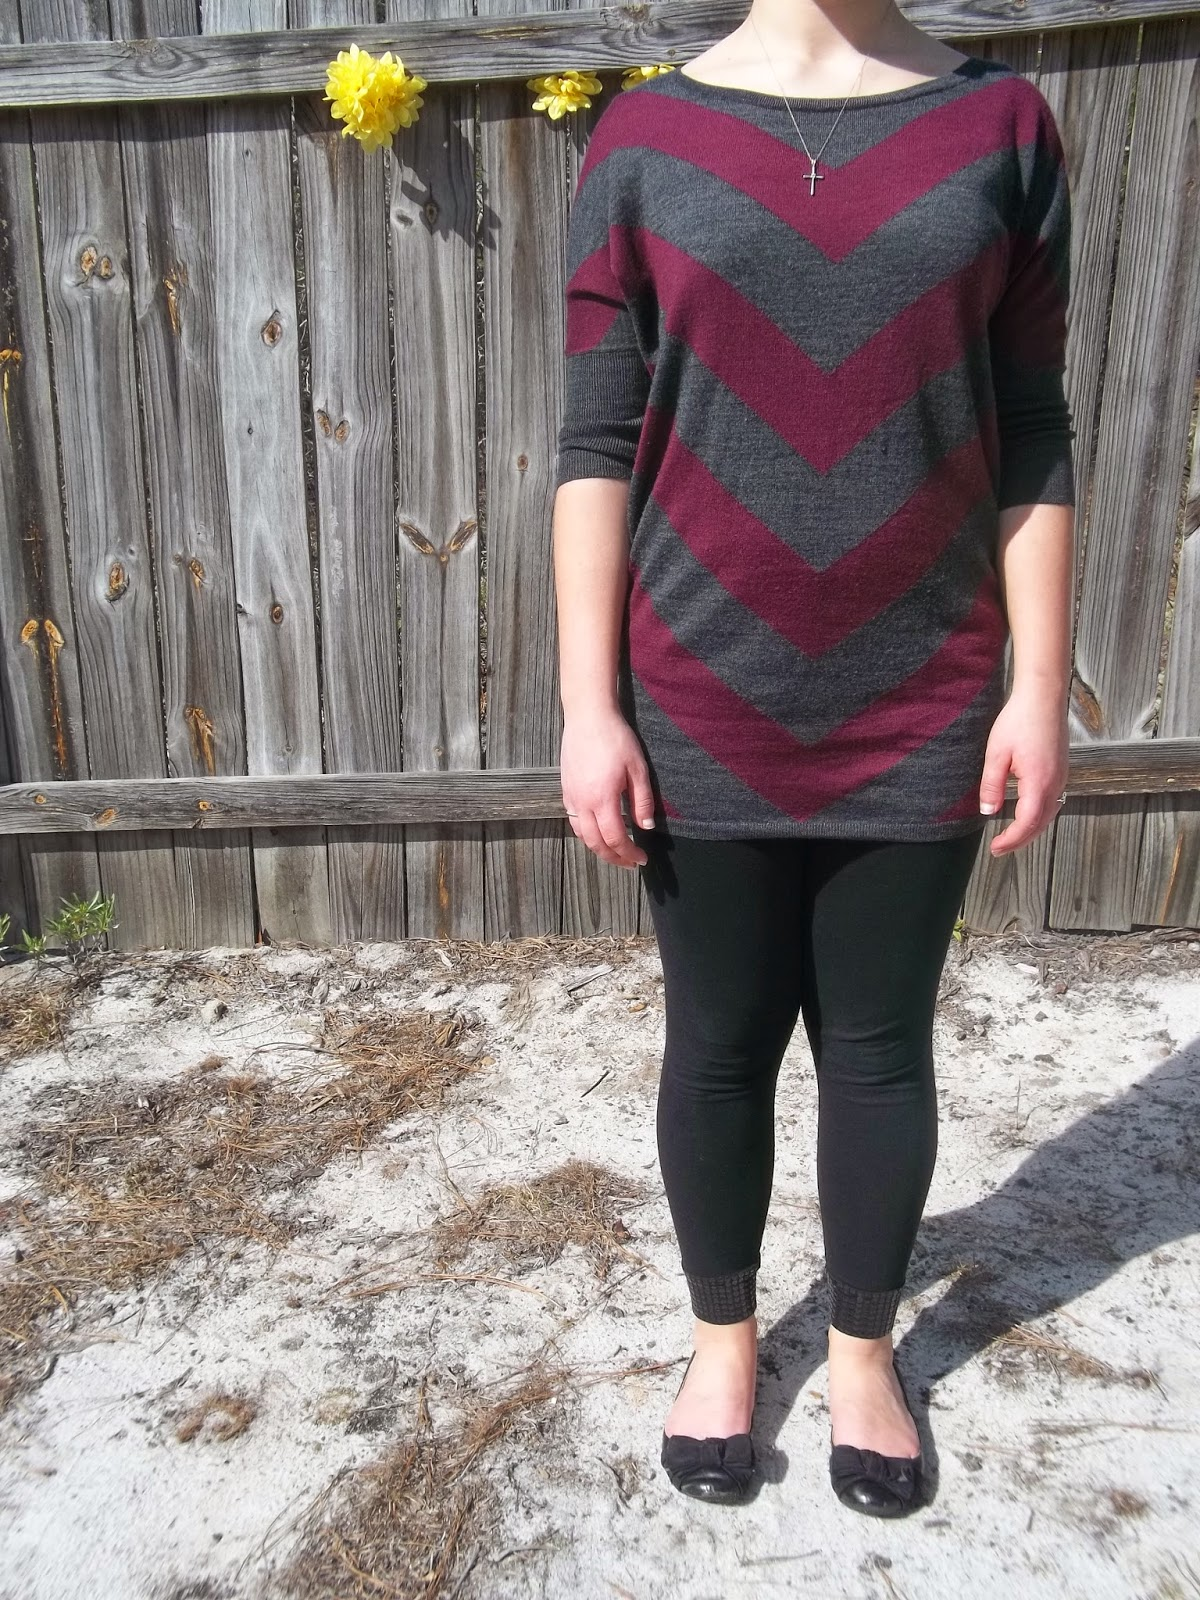 The Forgotten. Purple chevron tunic sweater, black leggings, black flats, simple jewelry. http://mybowsandclothes.blogspot.com/. #chevron #leggings #flats #outfit #outfitpost #outfitinspiration